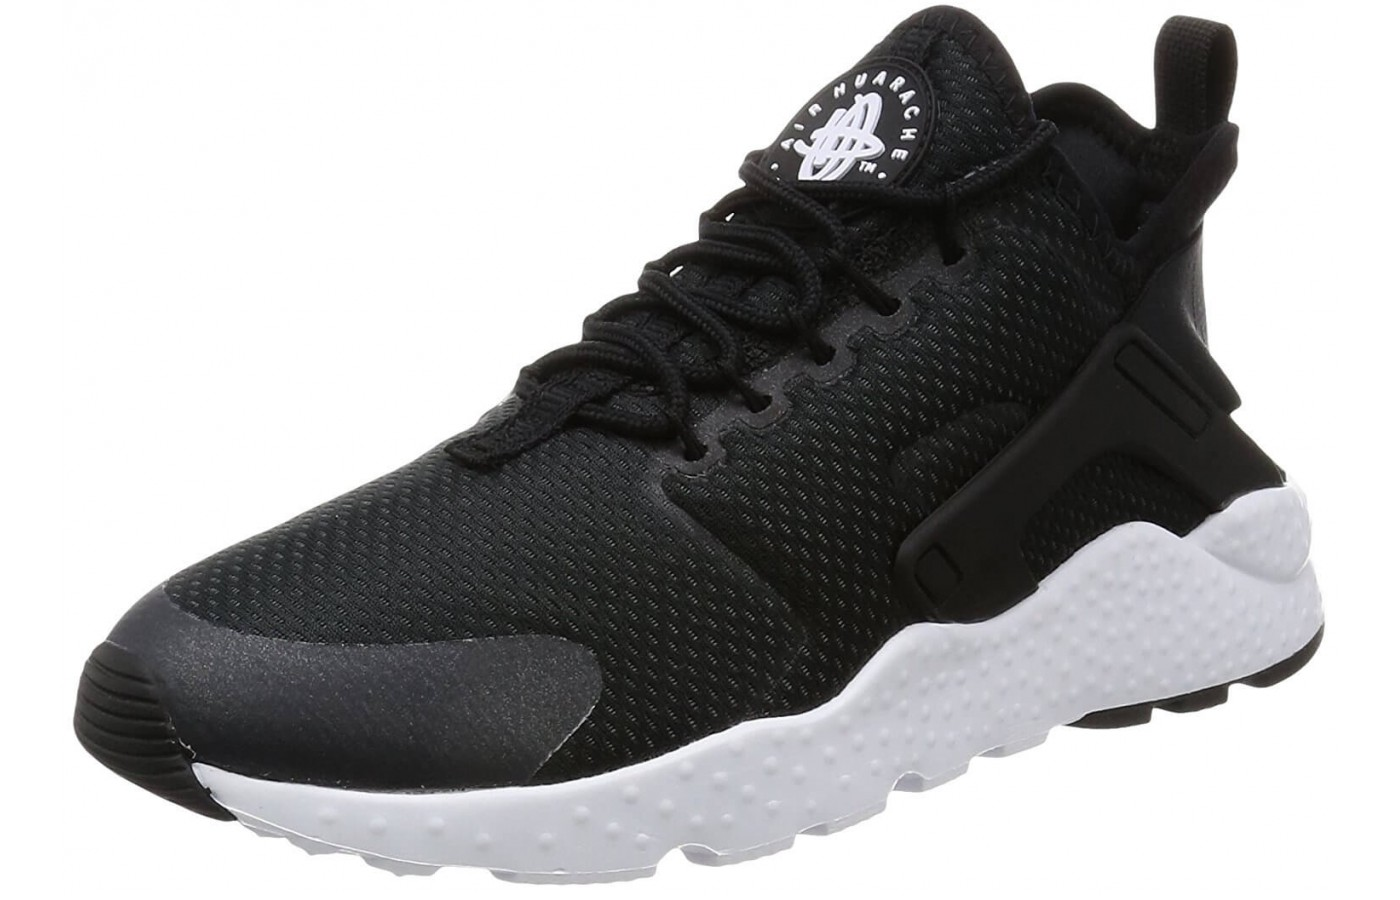 sports shoes 6c550 3efcf Although the Nike Air Huarache Ultra has a slight heel drop, it is much less  ...